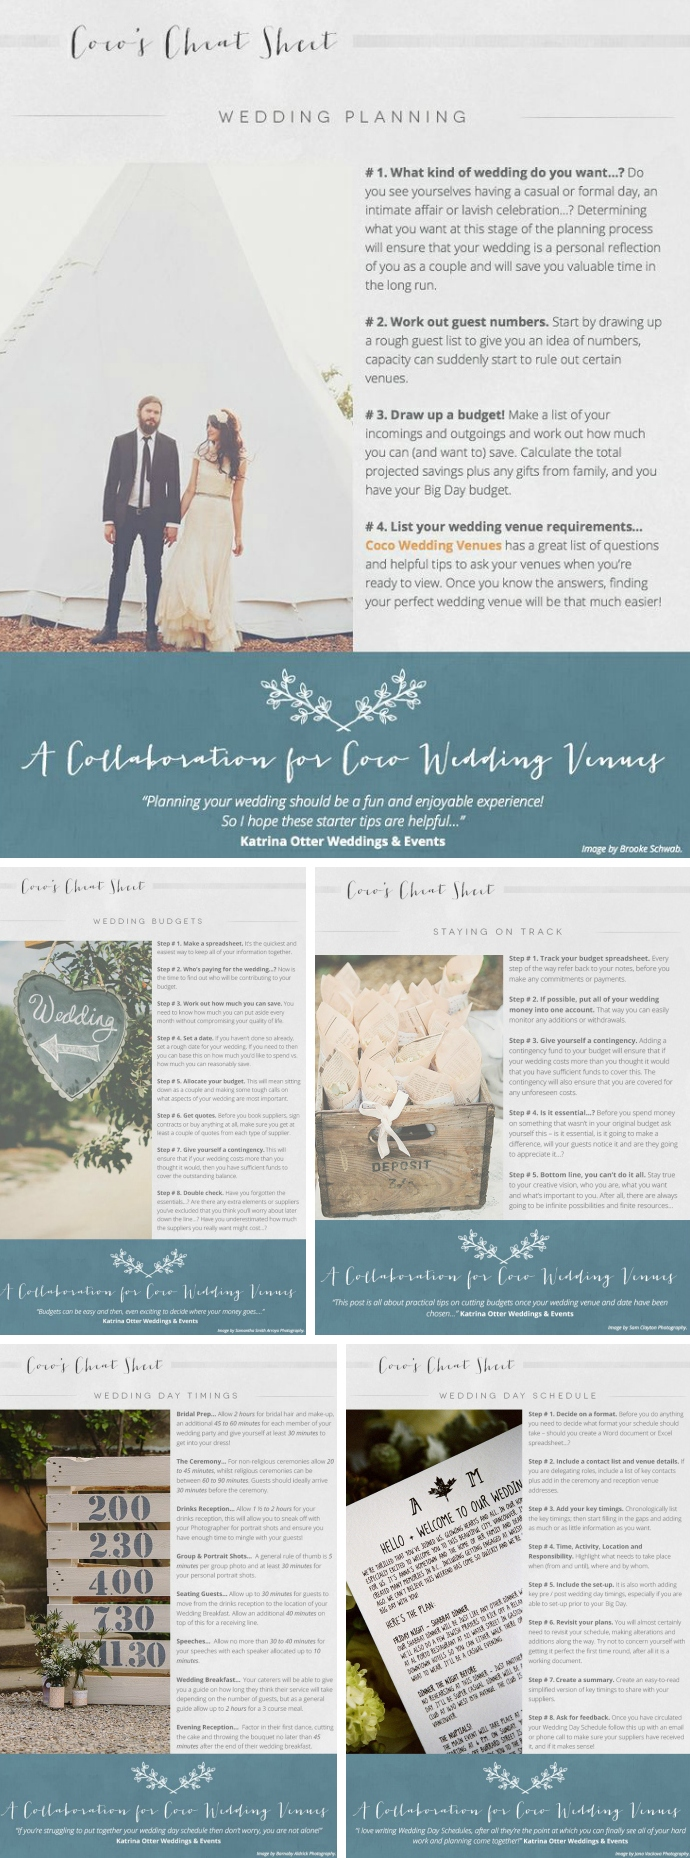 A Guide to Wedding Planning by katrina Otter Weddings